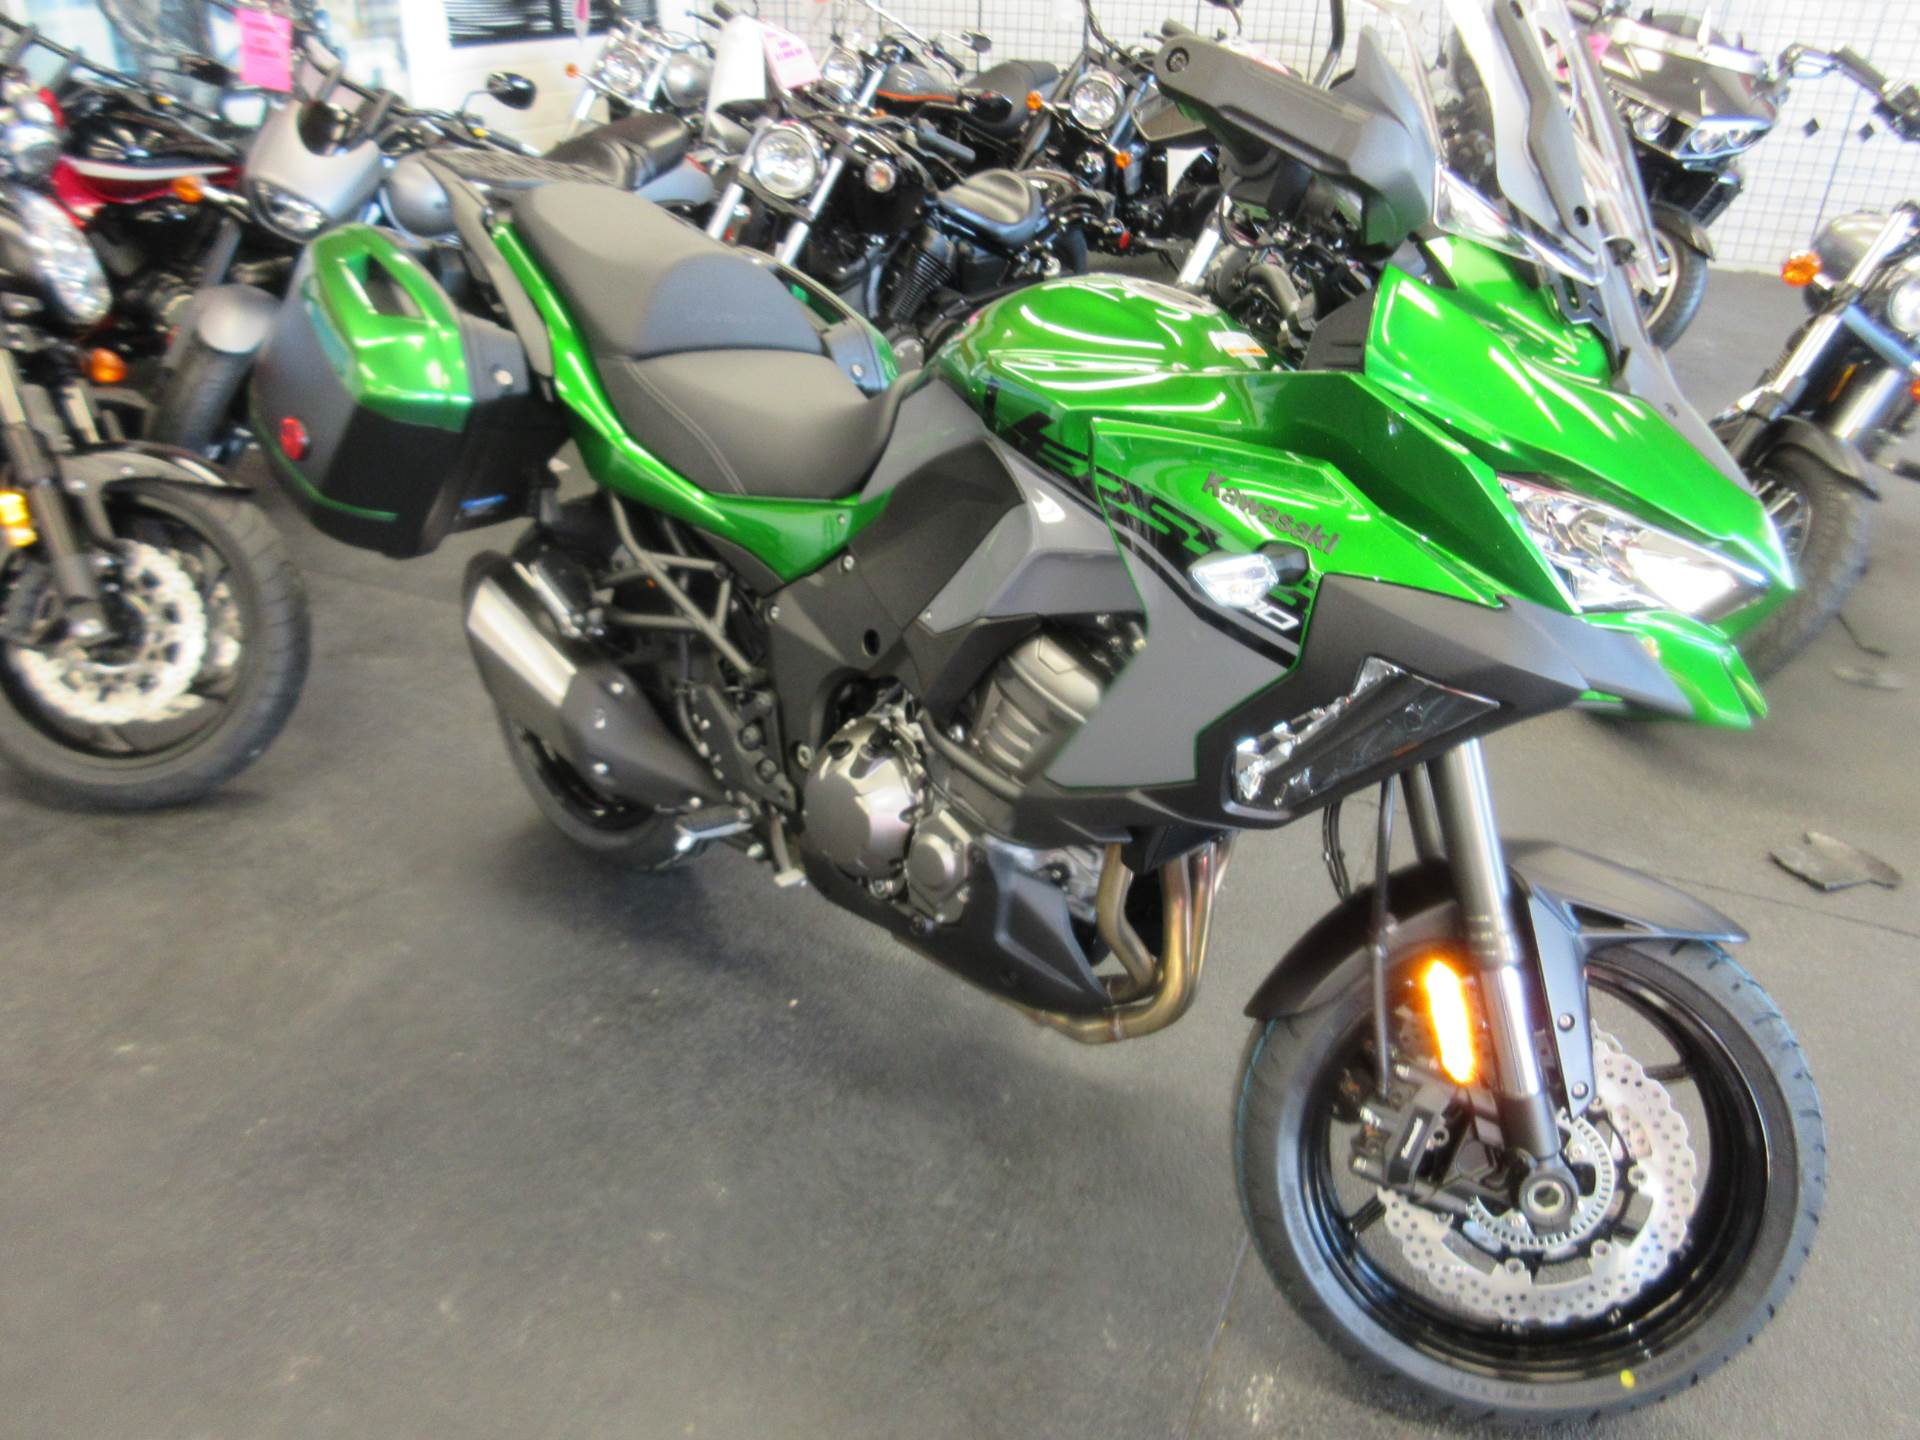 2020 Kawasaki Versys 1000 SE LT+ in Sacramento, California - Photo 6